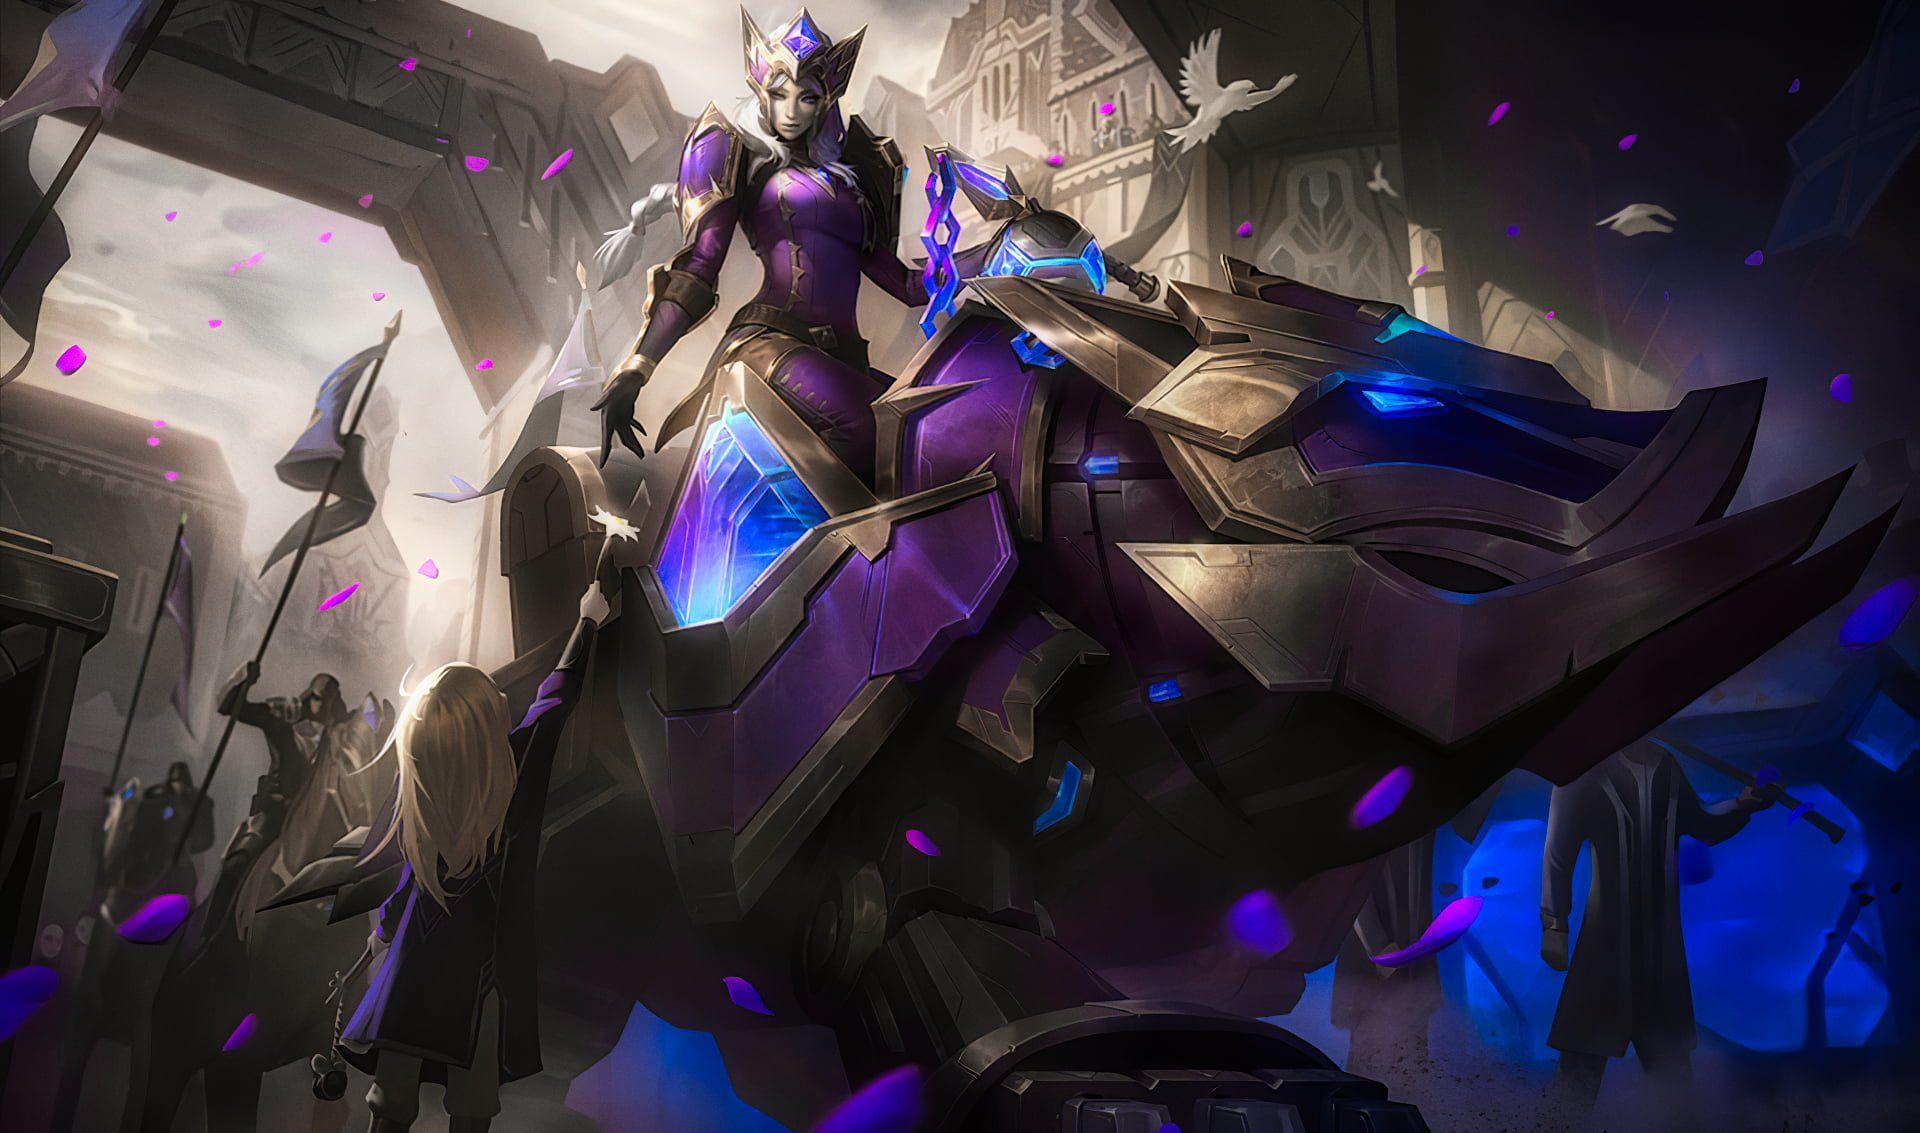 How To Obtain Lol New Exclusive Hextech Sejuani Skin L2pbomb League Of Legends Characters League Of Legends Funny News